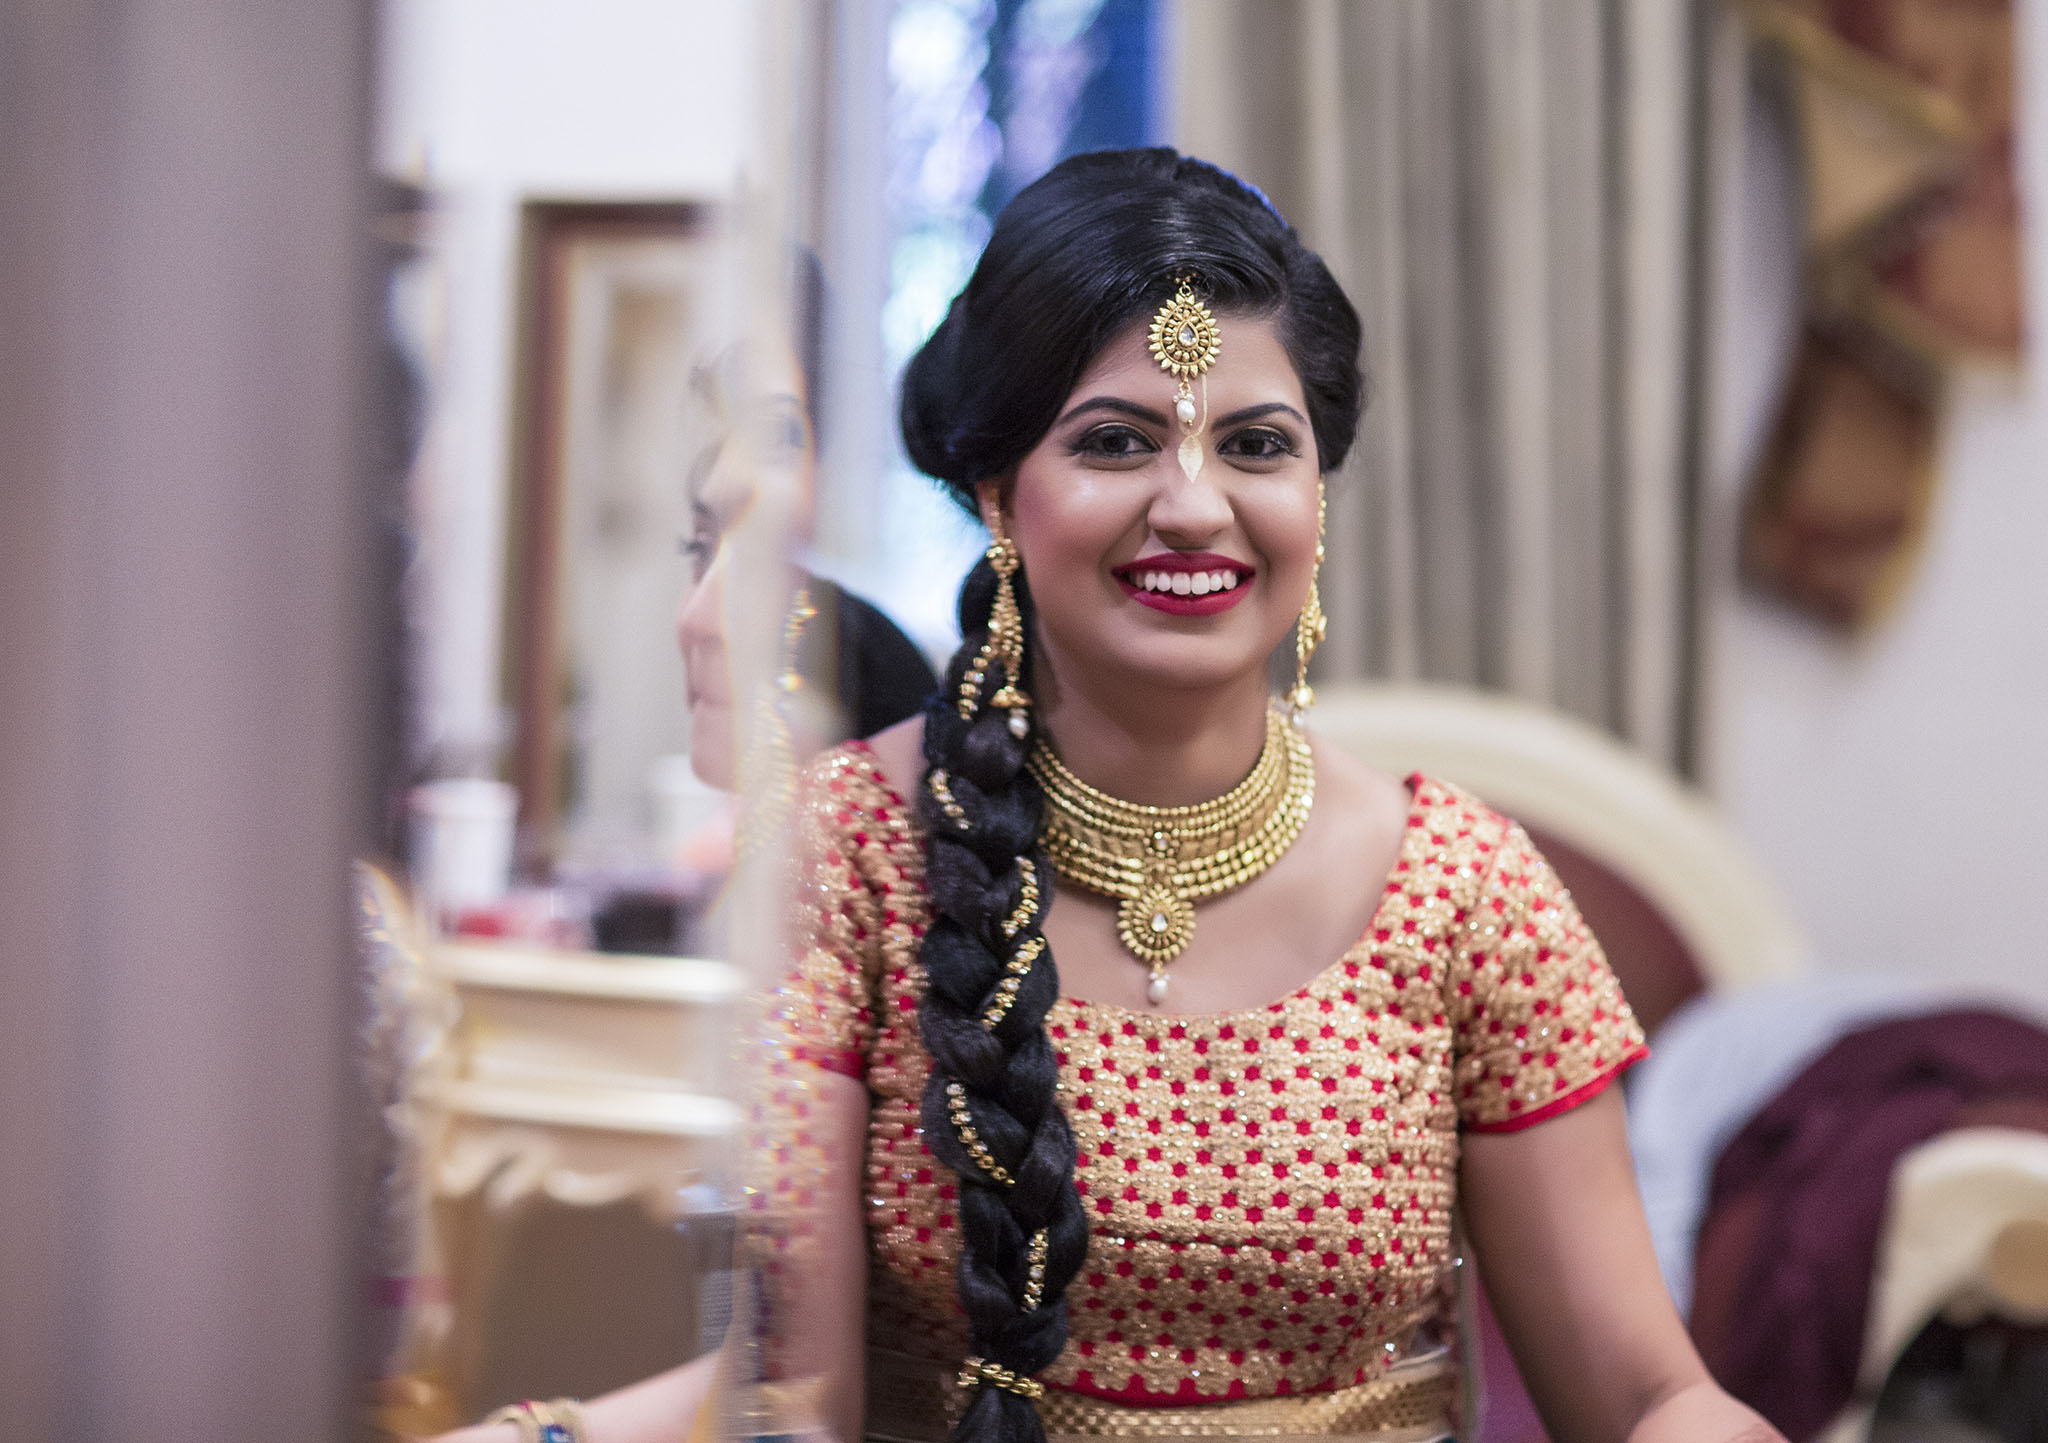 elizabethgphotography_kingslangley_hertfordshire_fineart_indian_wedding_photography_jigna_bhuja_bhaktivedanta_manor_watford_80.jpg